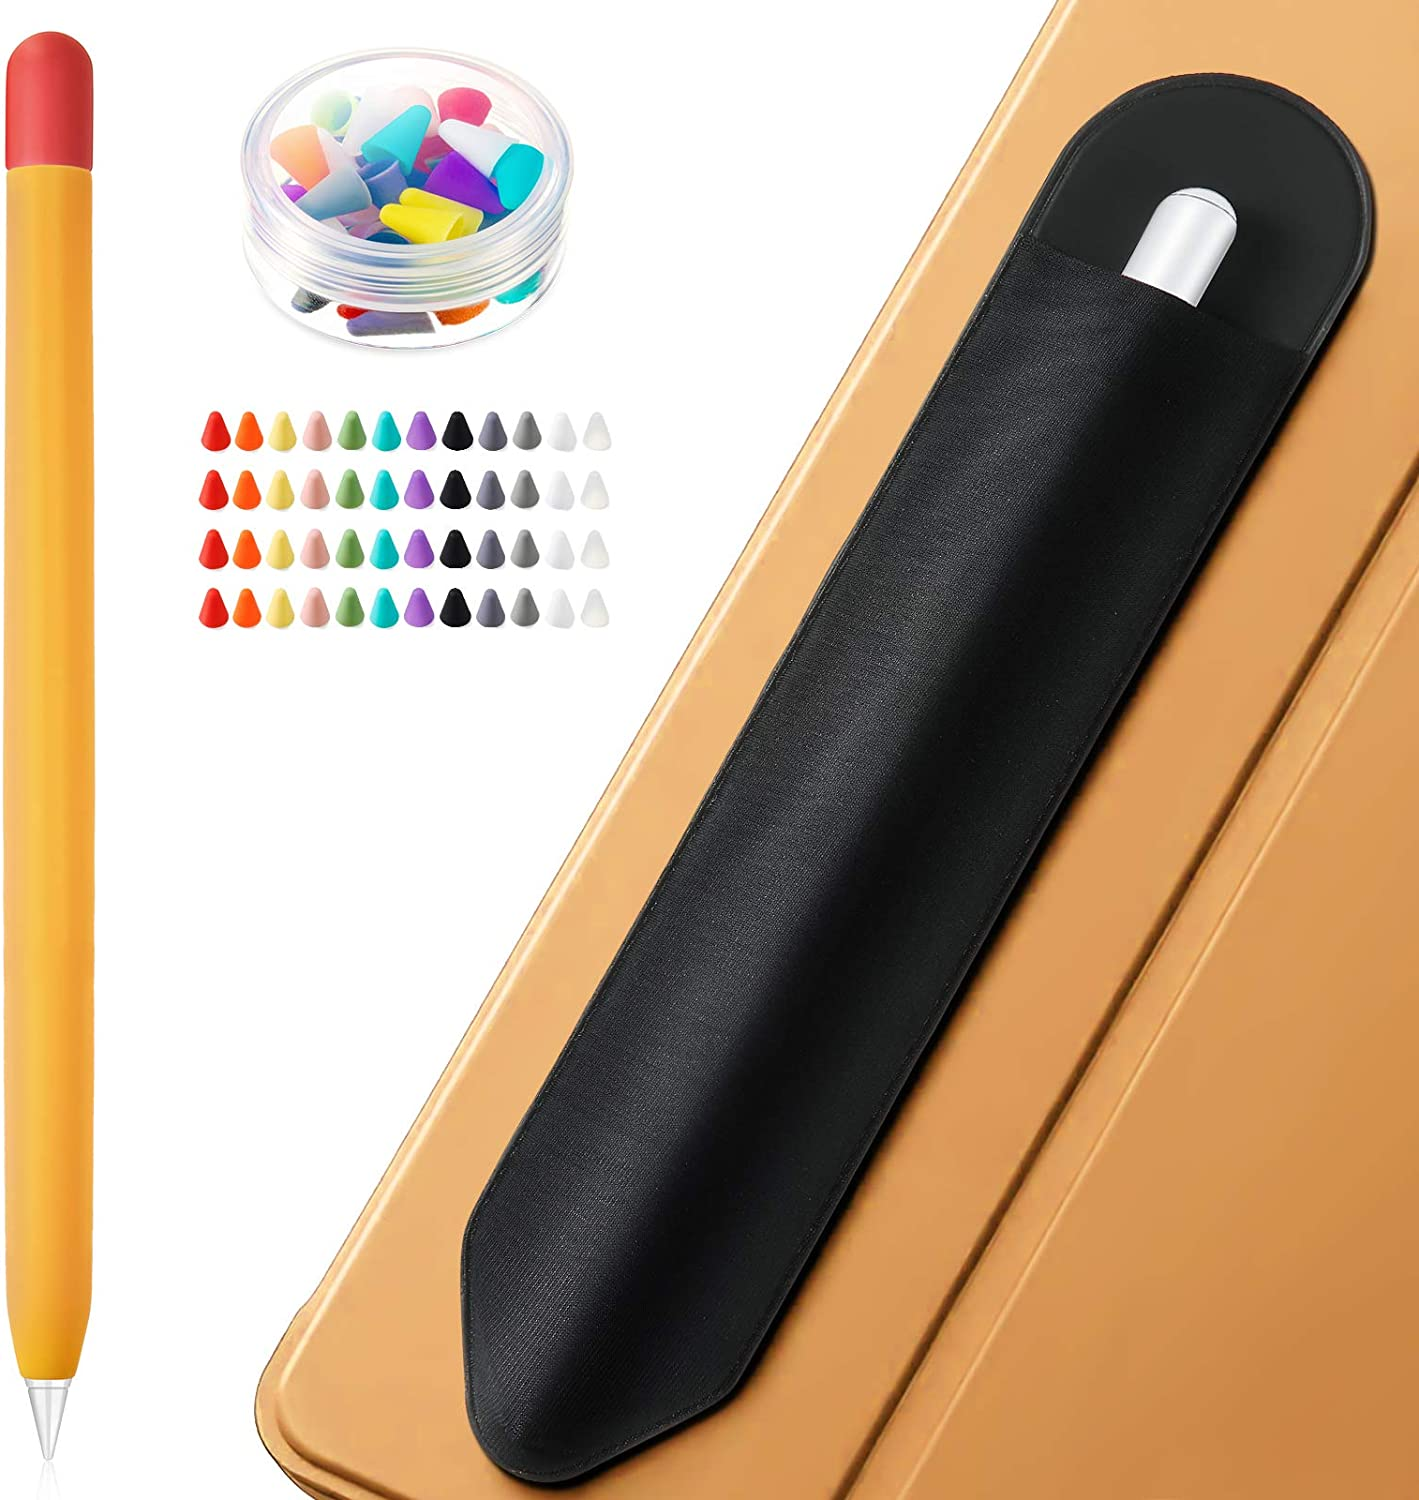 Pencil Holder Sticker Compatible with Apple Pencil 1st and 2nd Generation, Elastic Pocket Protected for Stylus Pens 48 Silicone Nibs Caps Pencil Cover Compatible with Apple Pencil 1st 2nd Generation